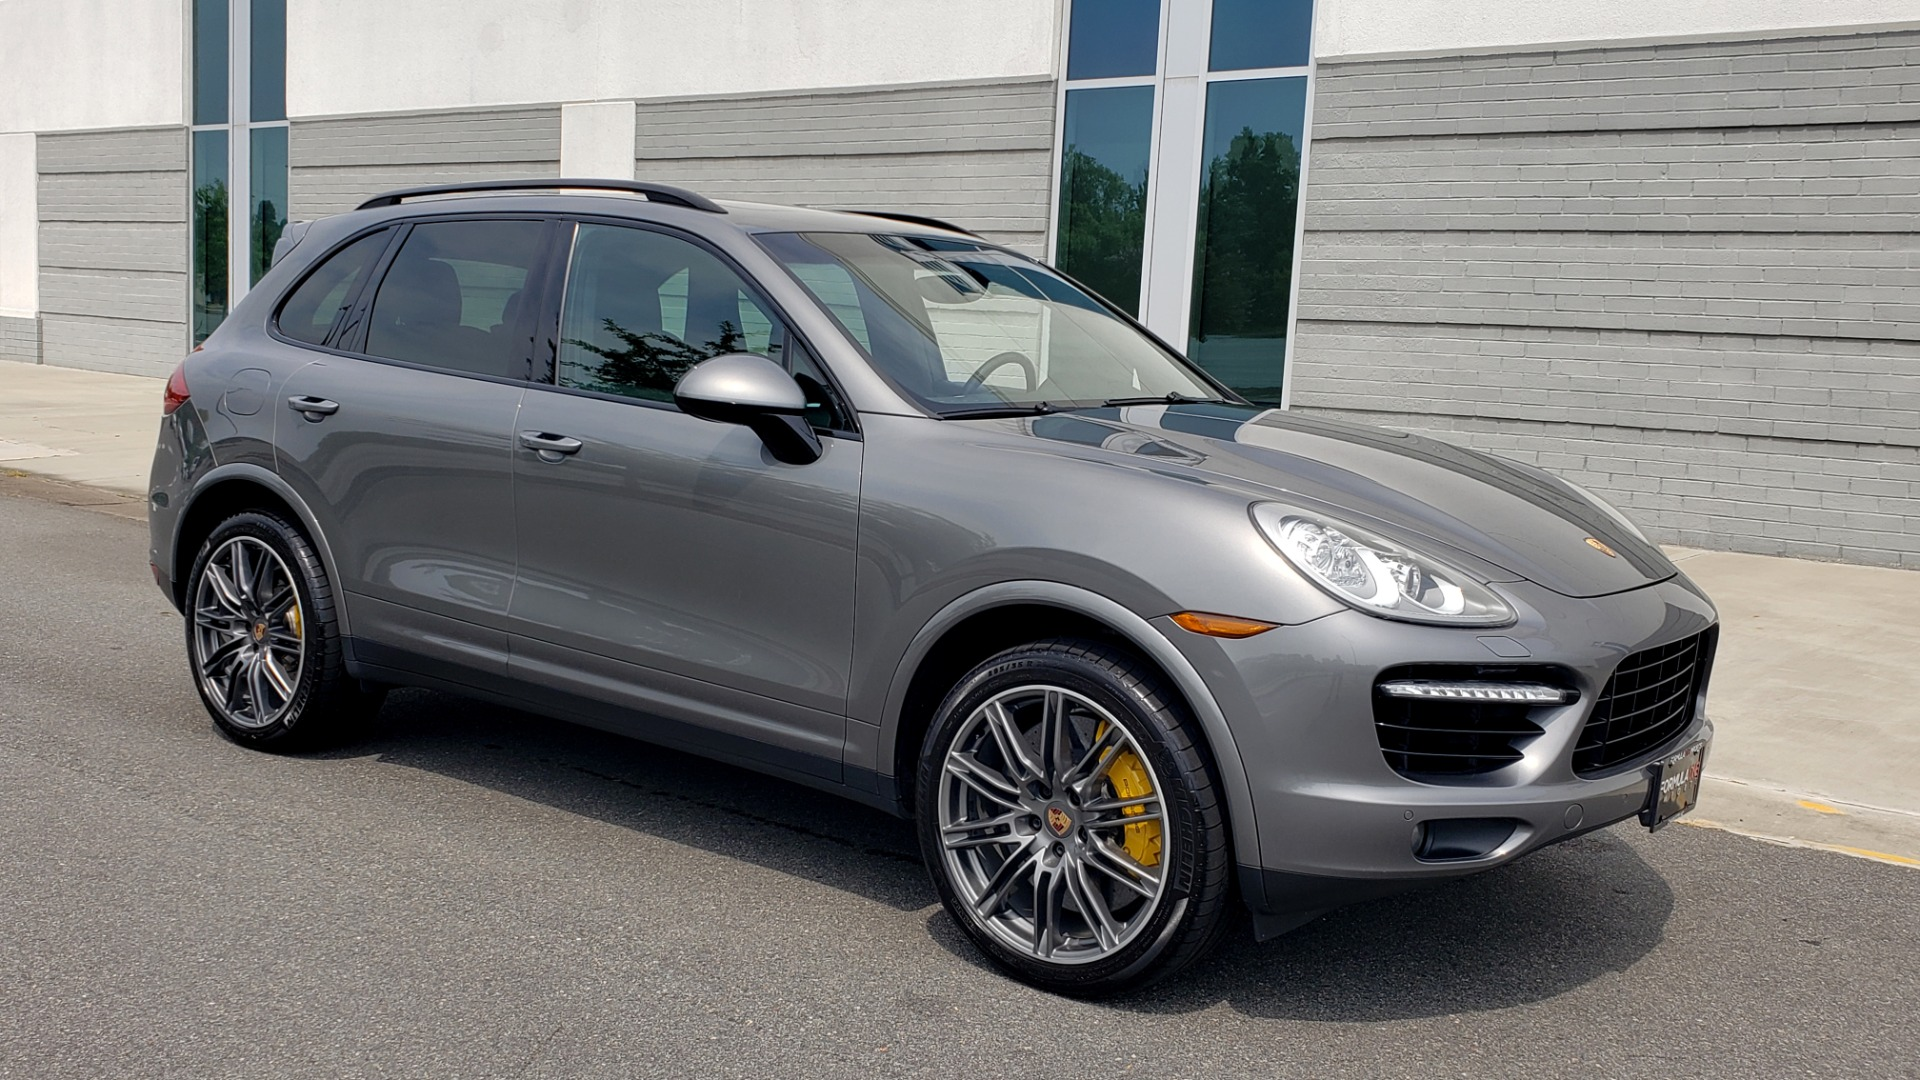 Used 2014 Porsche CAYENNE TURBO S / AWD / NAV / BOSE / PANO-ROOF / LCA / REARVIEW for sale Sold at Formula Imports in Charlotte NC 28227 7